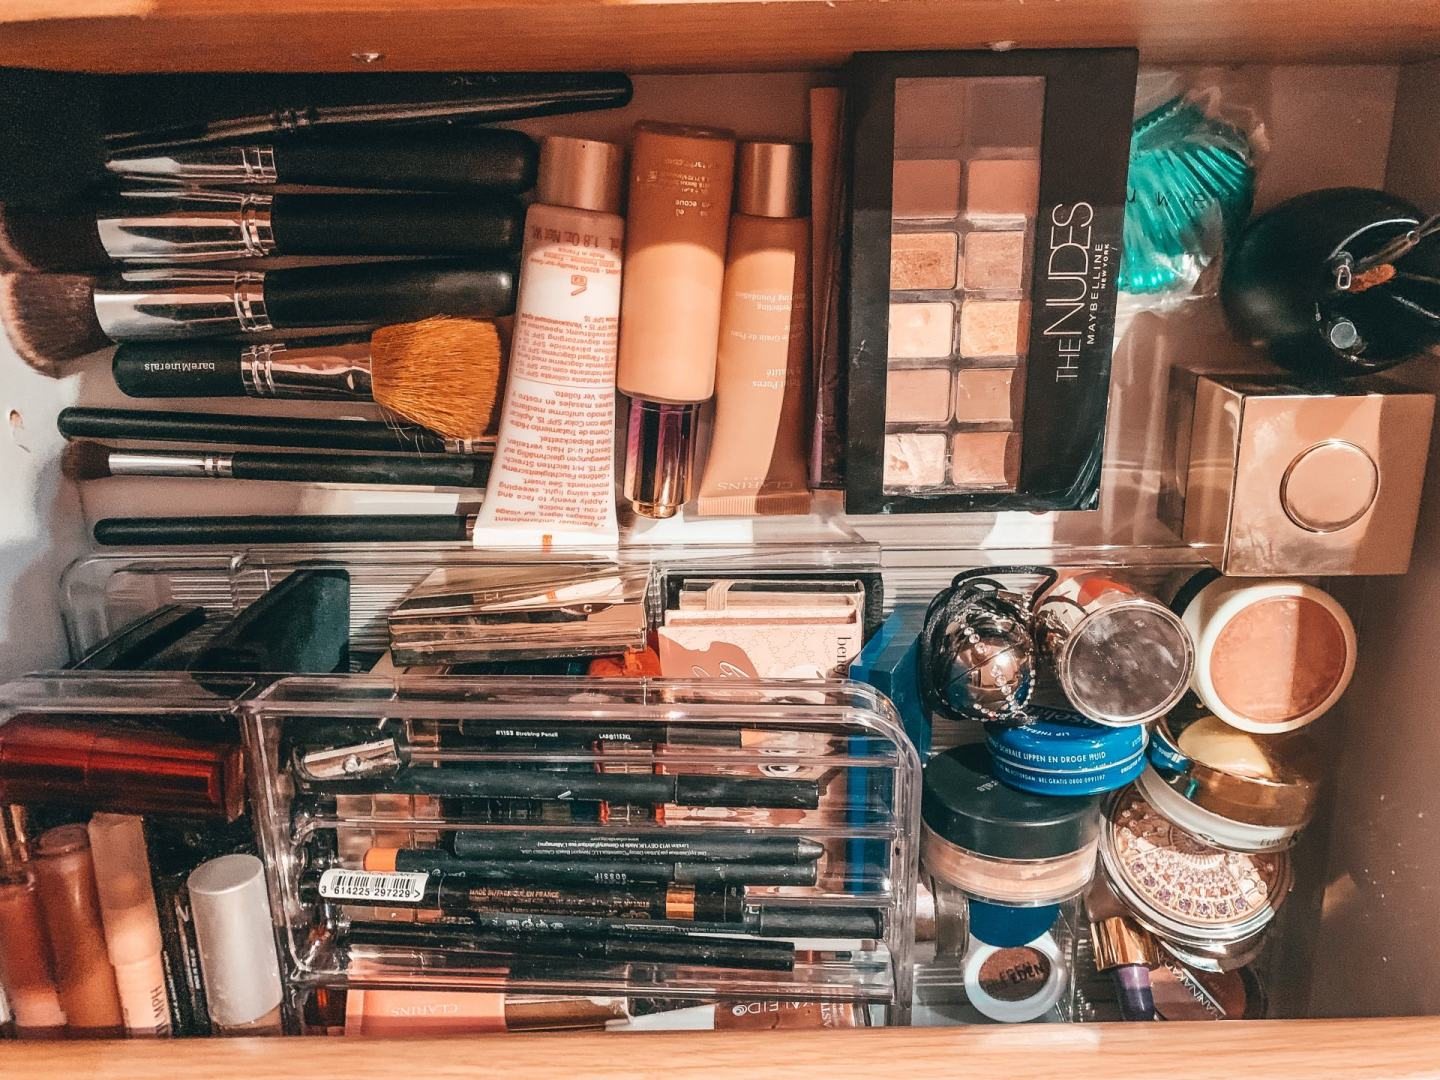 declutter-makeup-drawers-www.stylinglifetoday.com